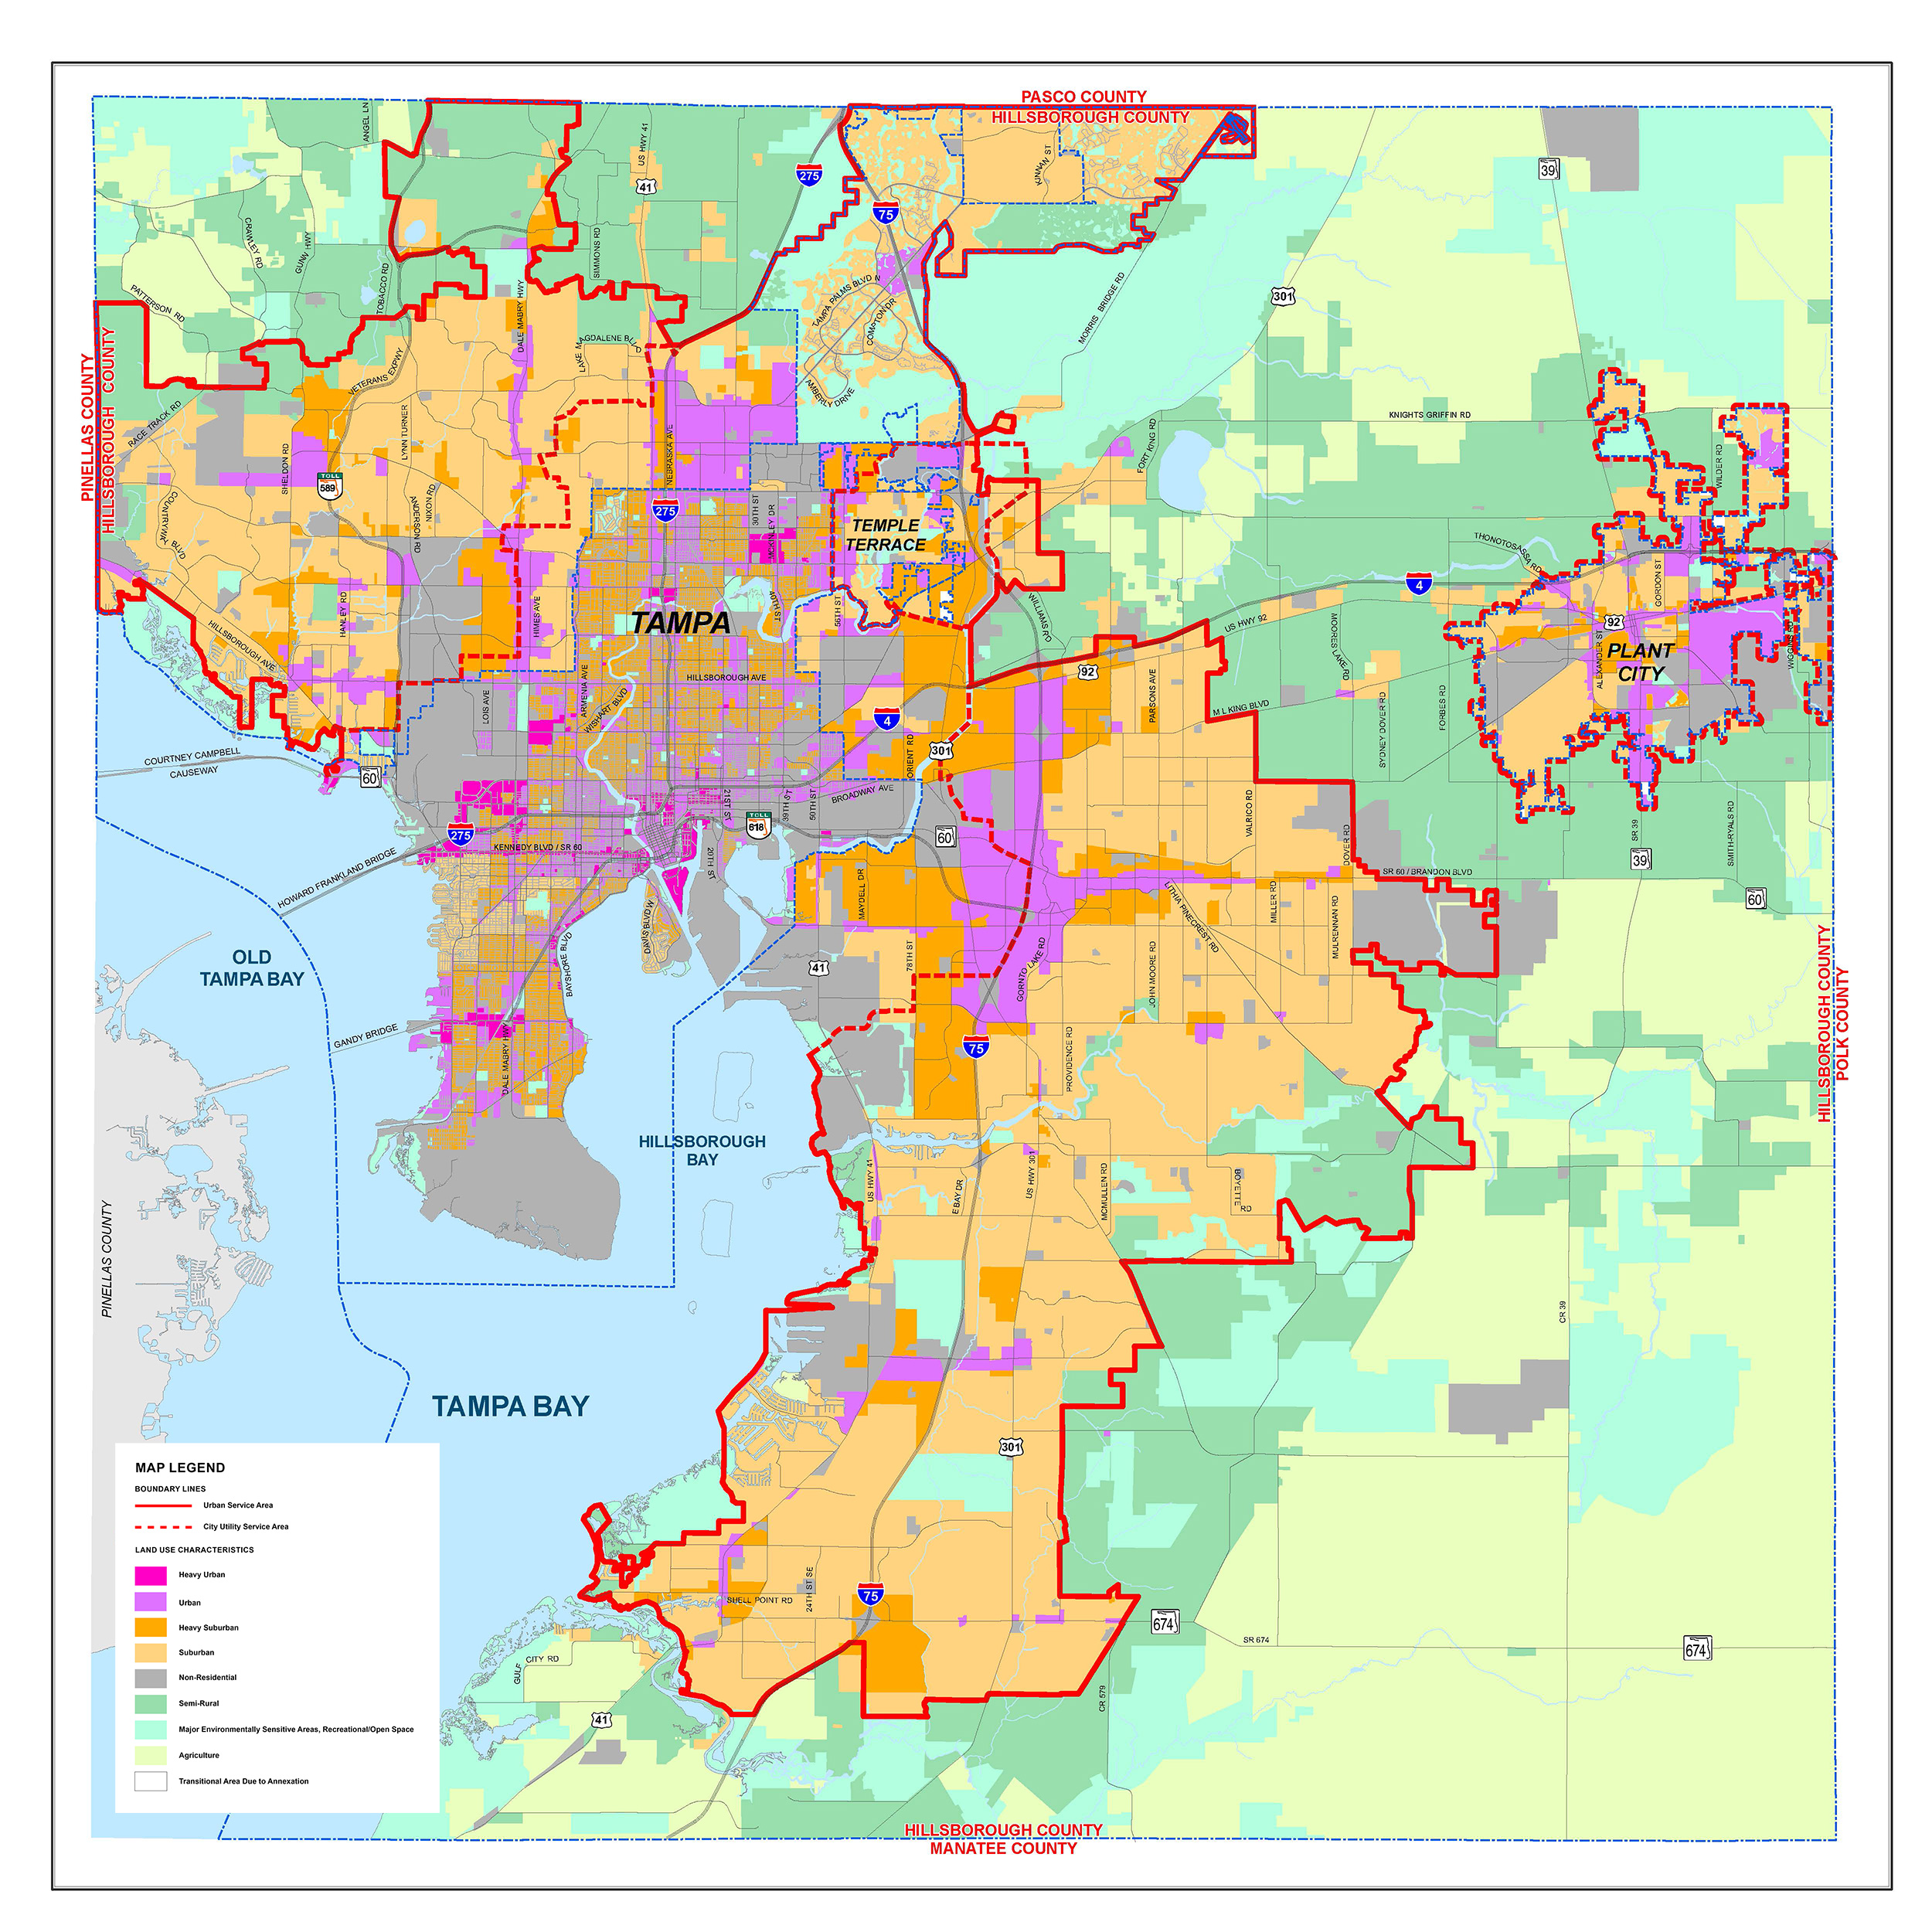 Urban Service Area An Efficient Growth Management Tool Plan - Image of us map at 2040